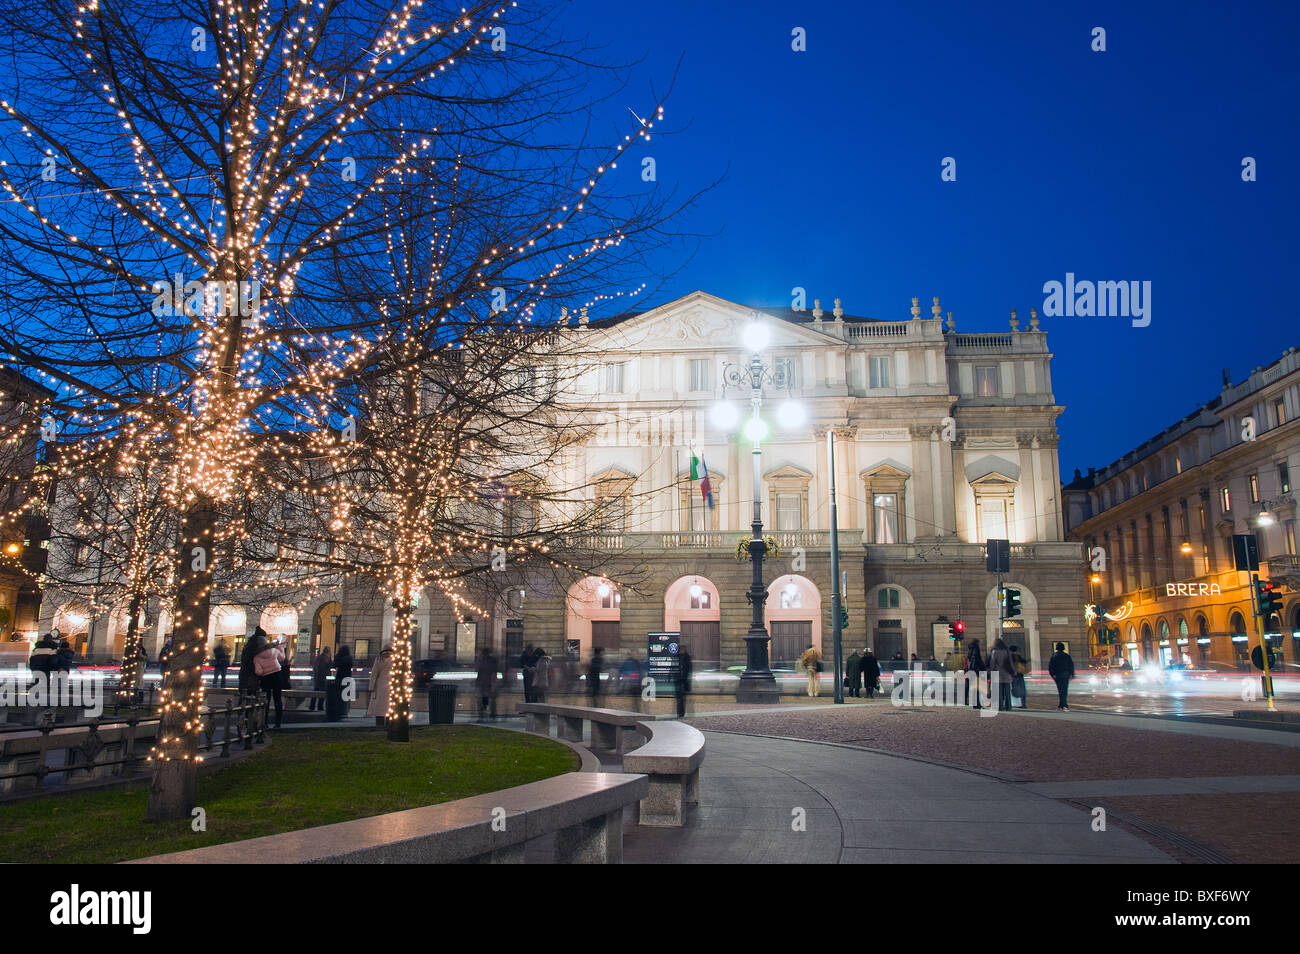 View of La Scala opera theatre at dusk behind the trees decorated with Christmas lights, Milan, Italy - Stock Image